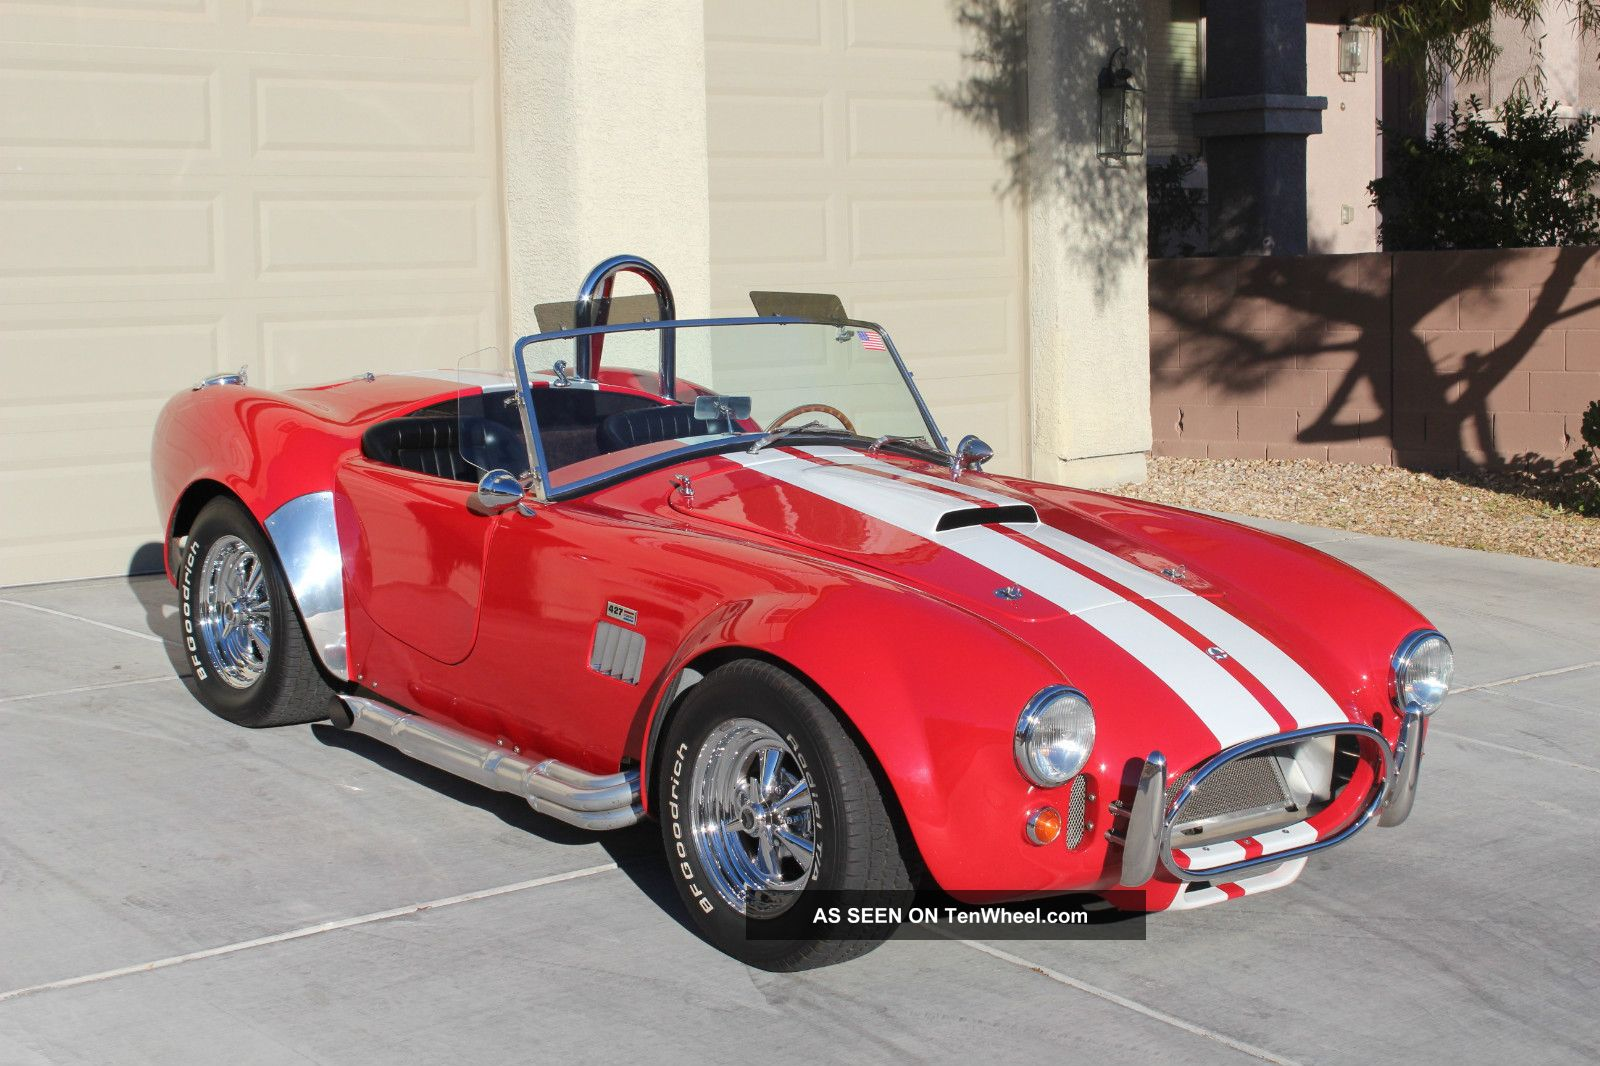 1965 Ford Factory 5 Racing Shelby Cobra Mk3 427 5 - Speed Replica Replica/Kit Makes photo